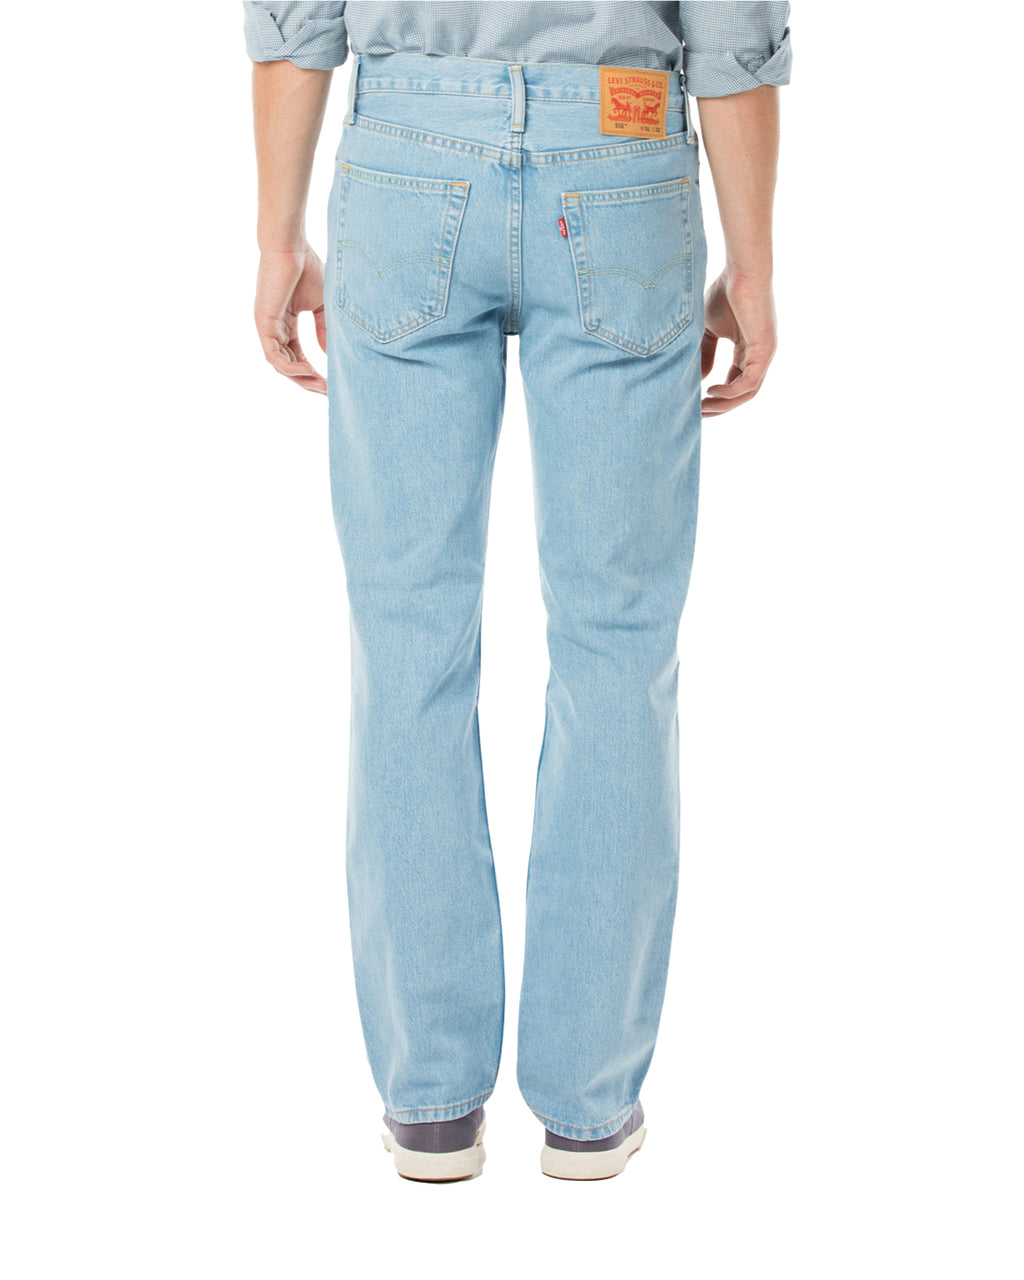 Levi's - 516 Straight Fit Jeans - Superwash